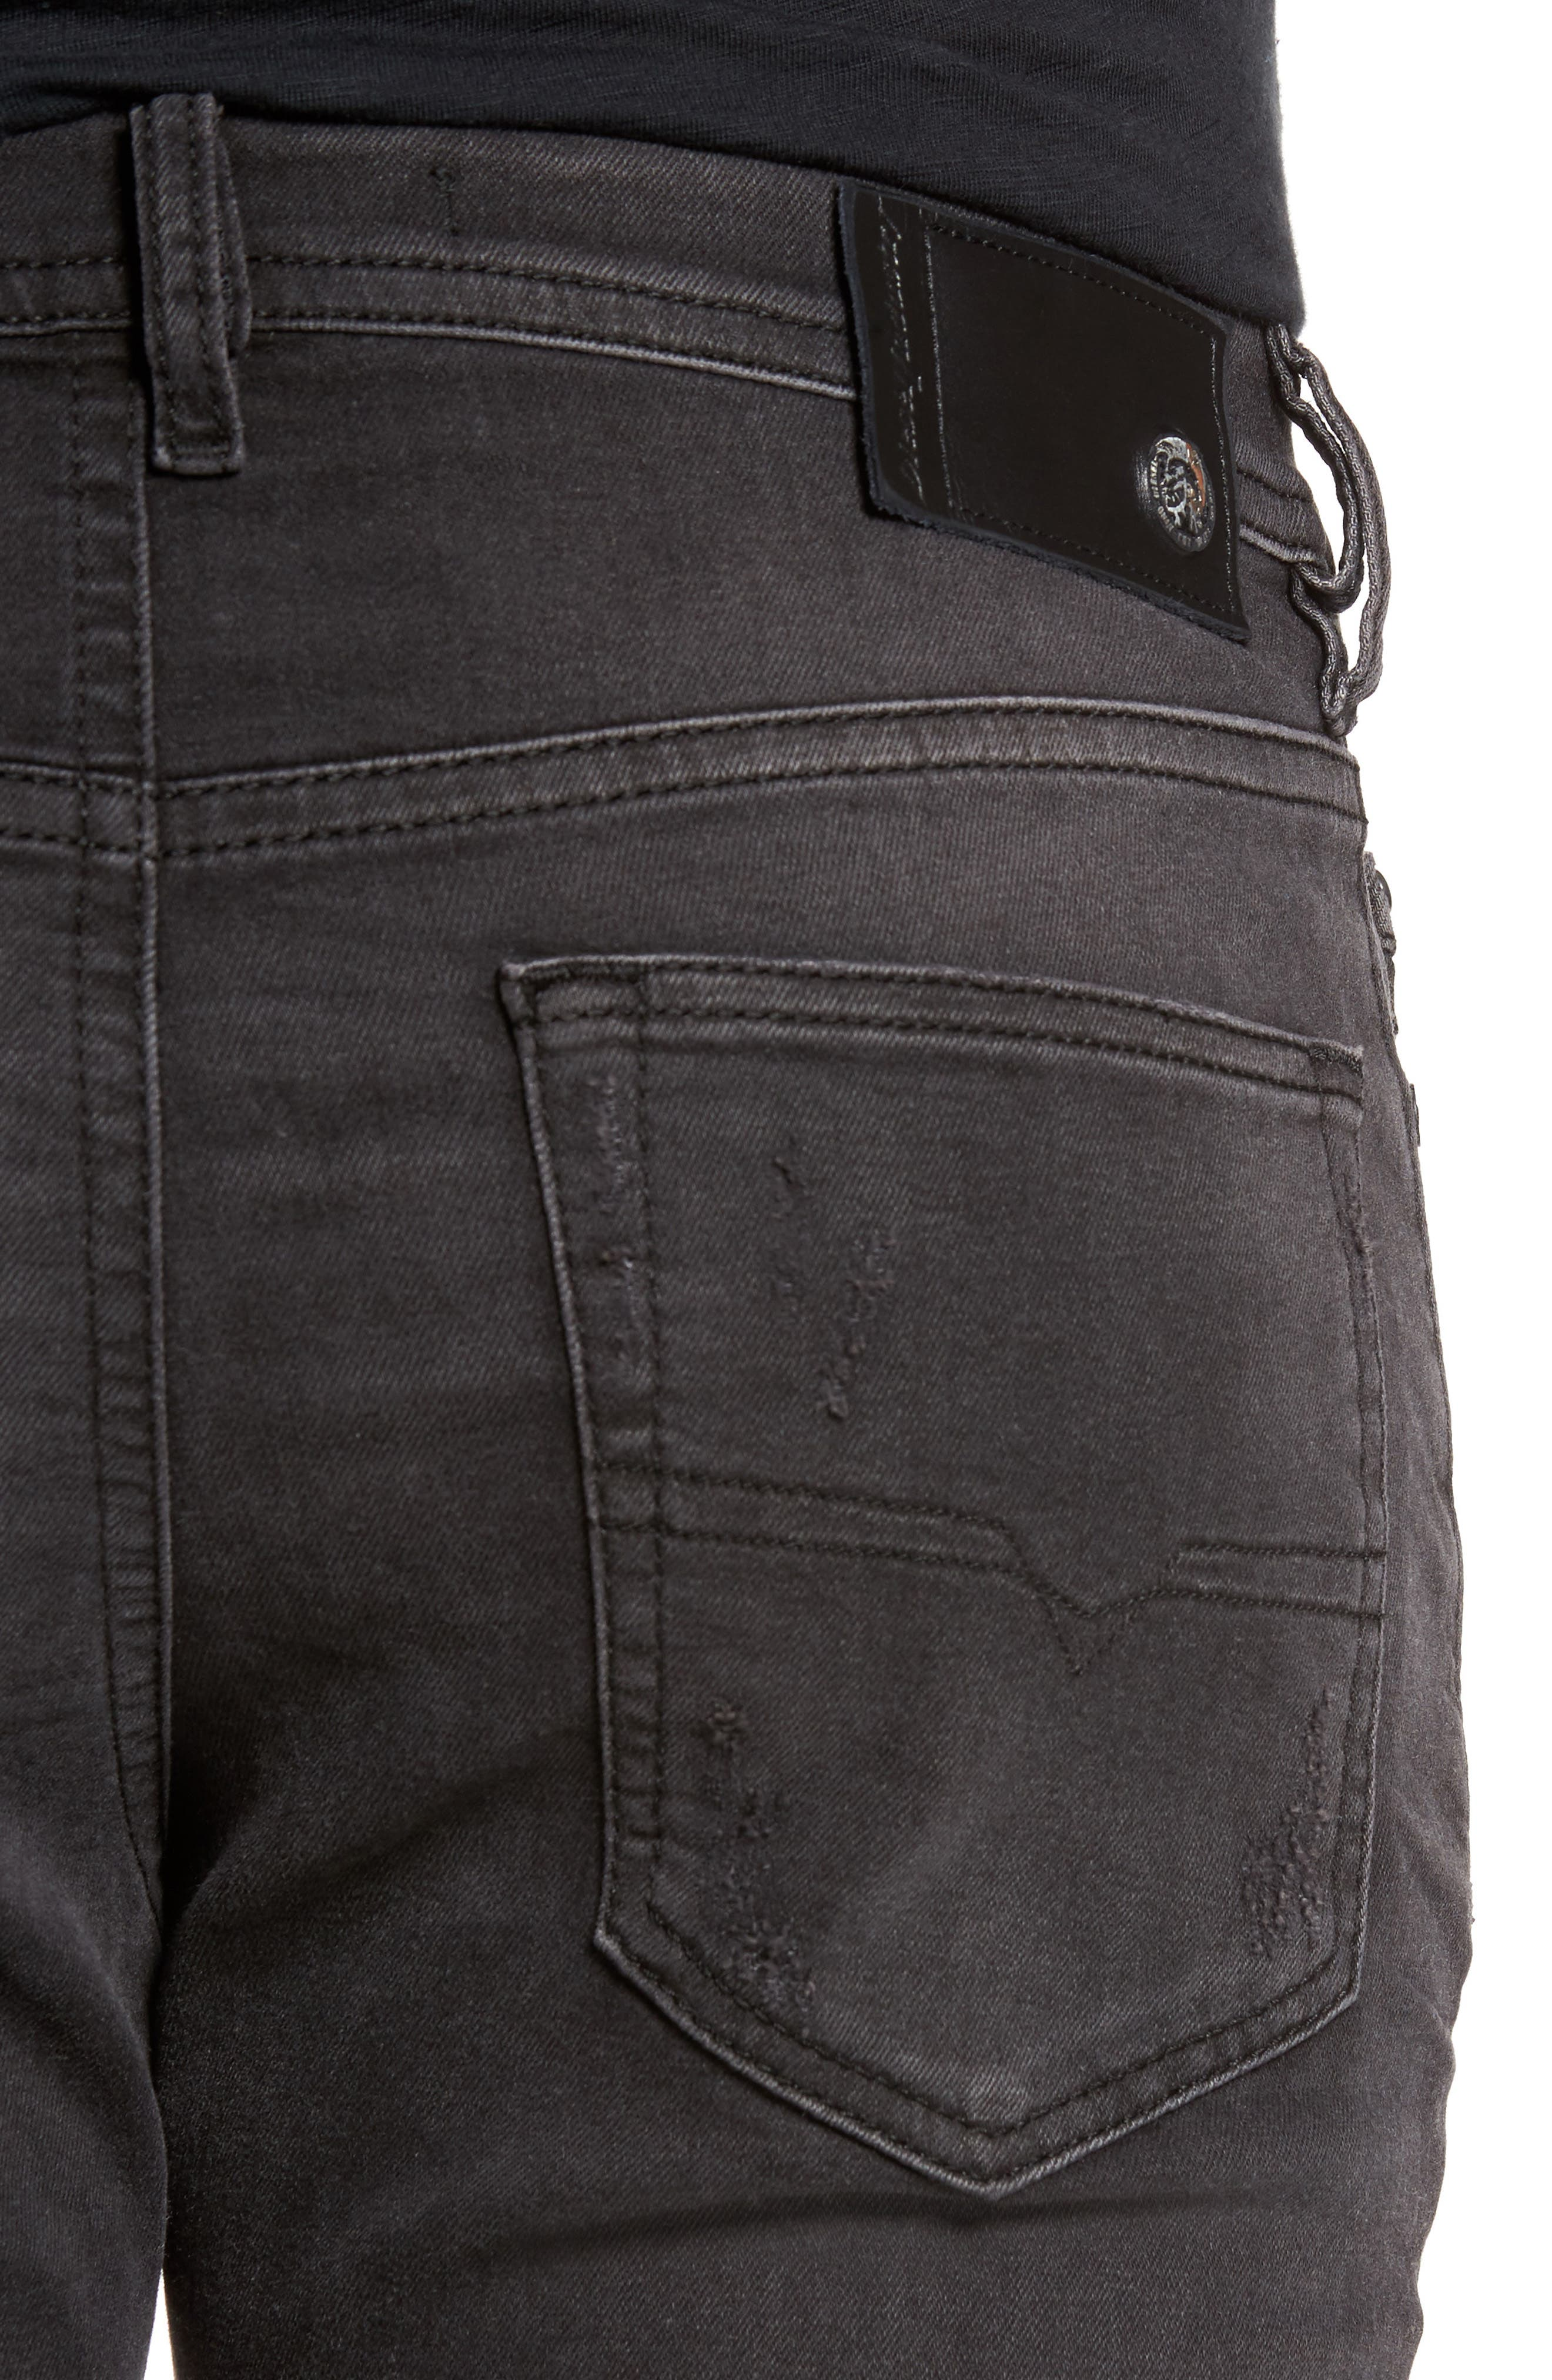 Buster Slim Straight Fit Jeans,                             Alternate thumbnail 4, color,                             008